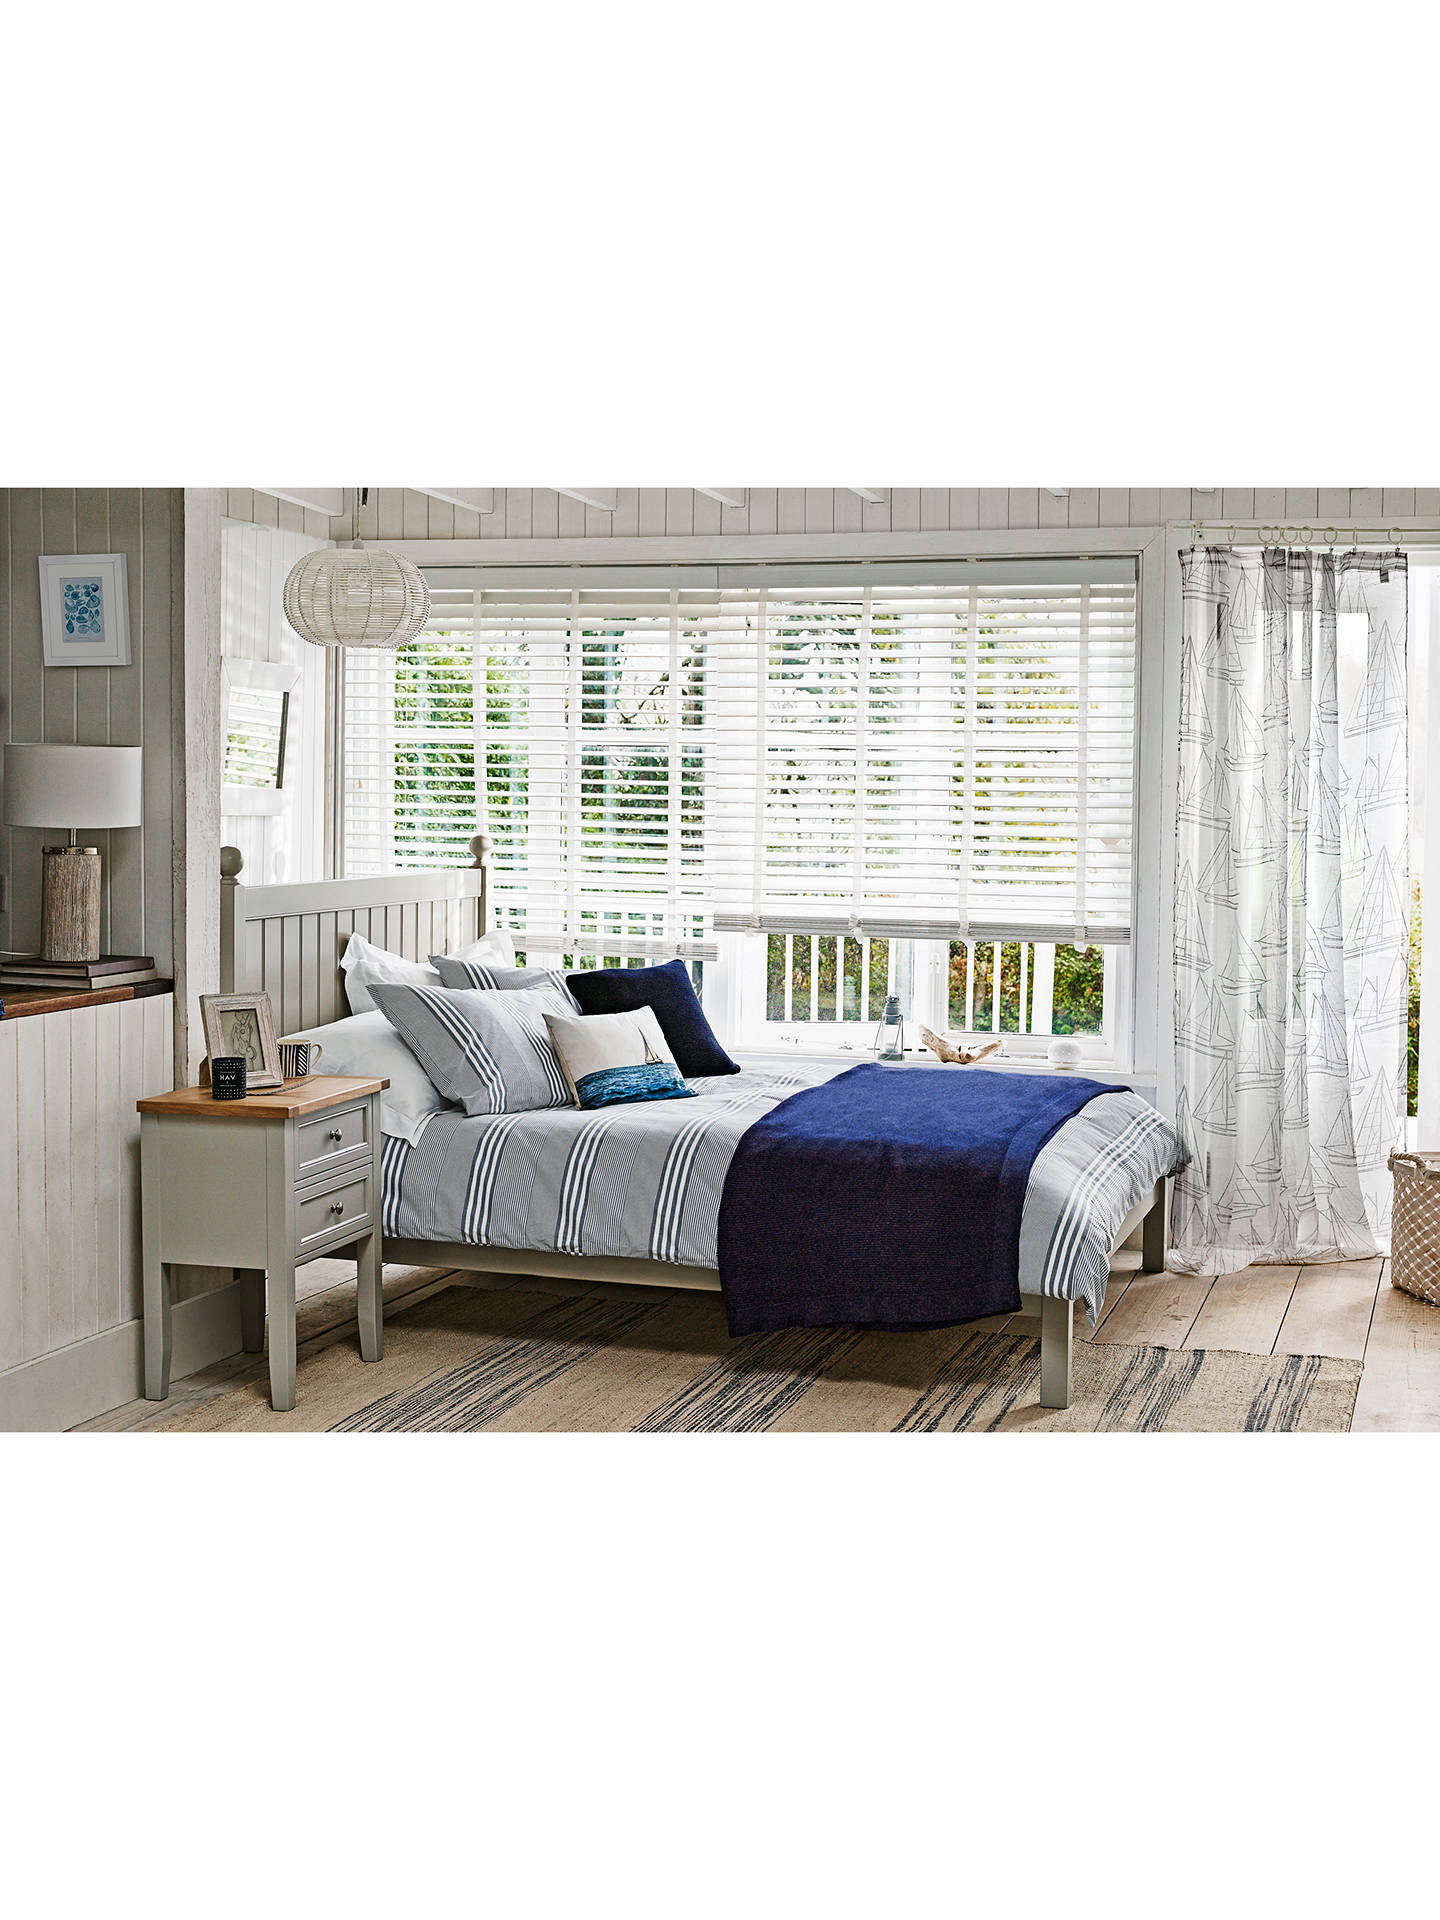 BuyJohn Lewis & Partners St Ives Bed Frame, FSC-Certified (Oak, Birch, Oak Veneer, MDF), King Size, Grey Online at johnlewis.com